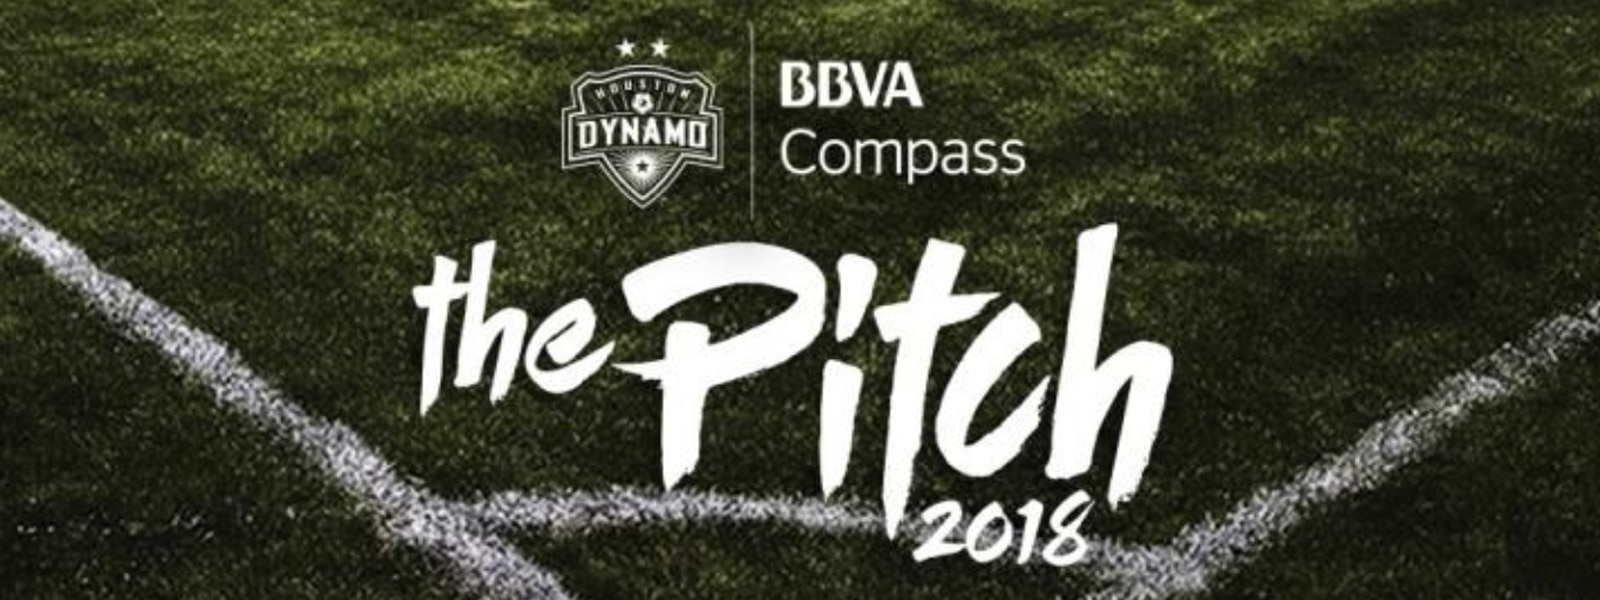 BBVACompass-Dynamo-Pitch-2018